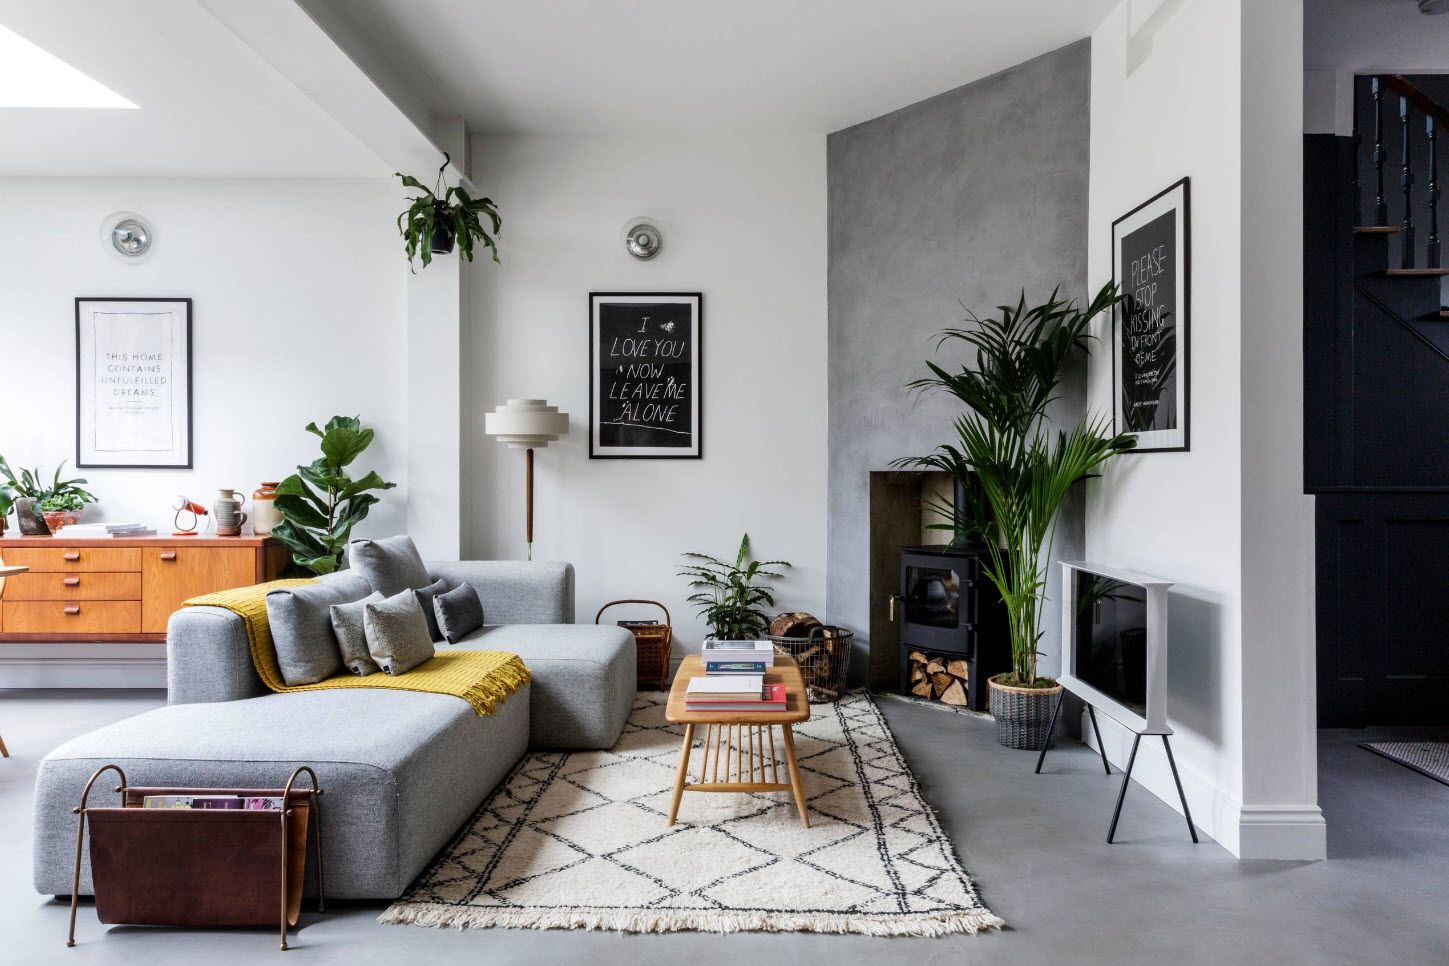 Gray intterior decoraion with carpet and upholstered sofa